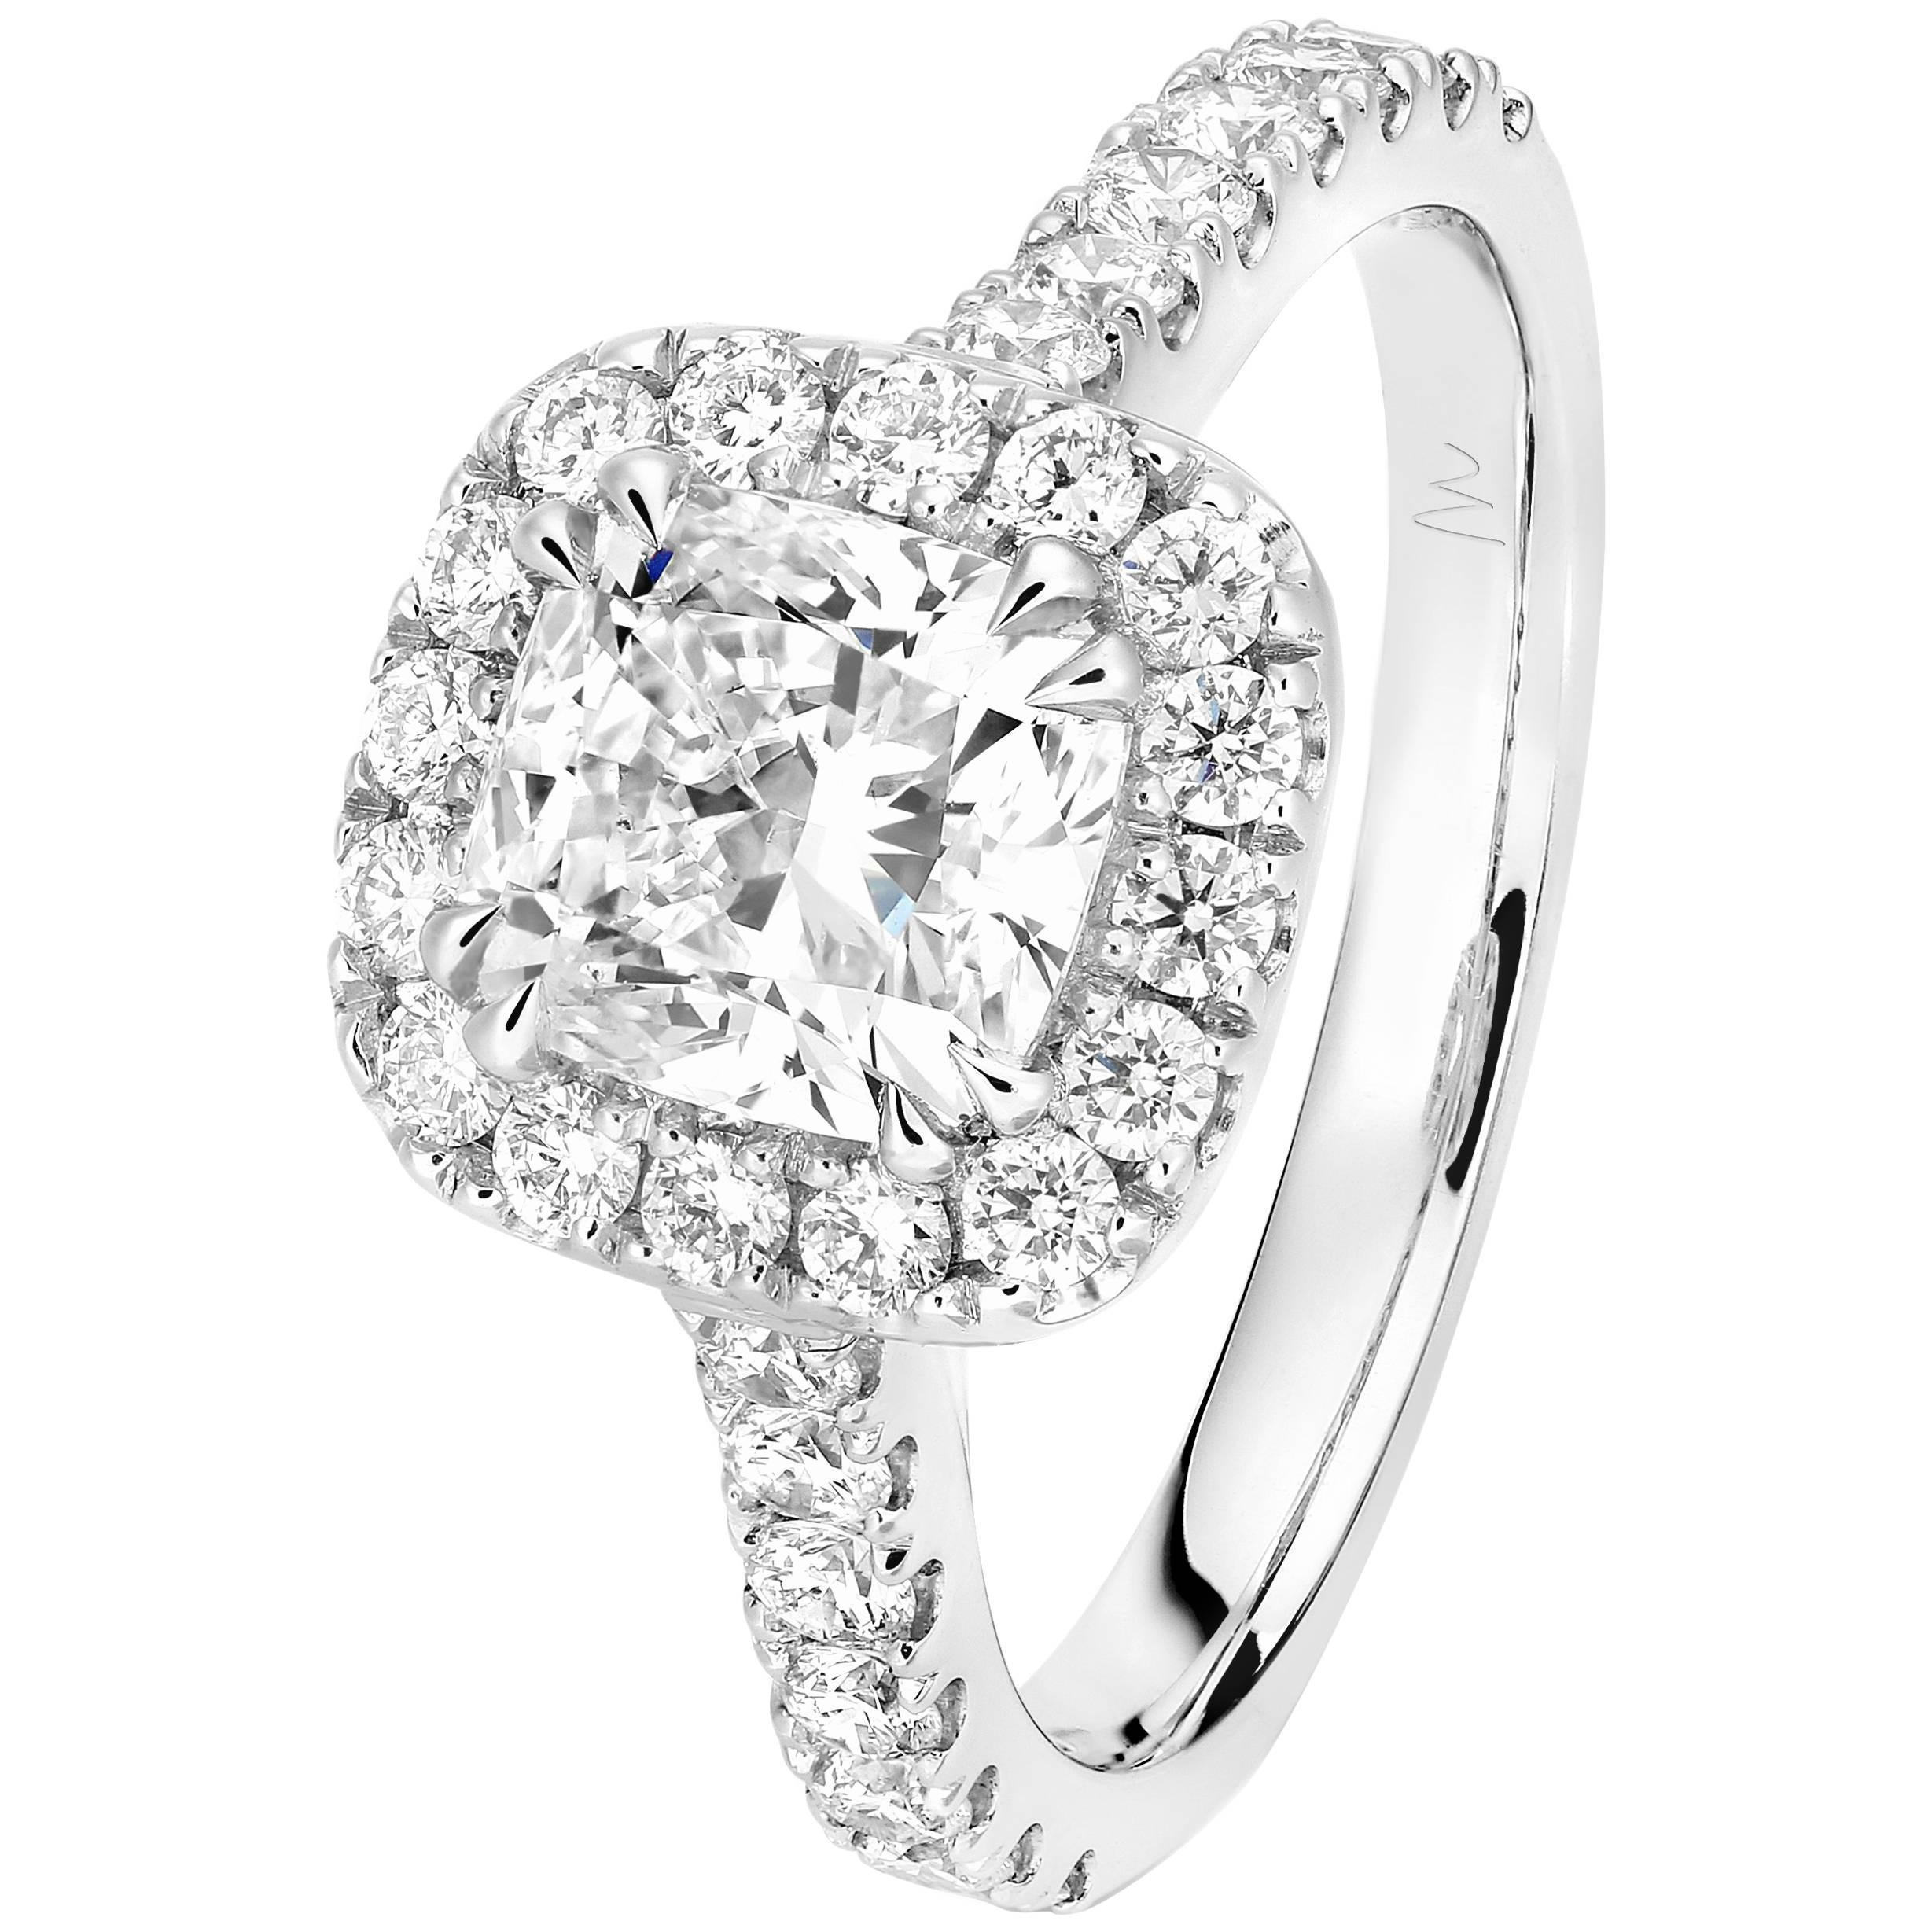 show ring product carat gold action rings shop williams detailed j d wedding details